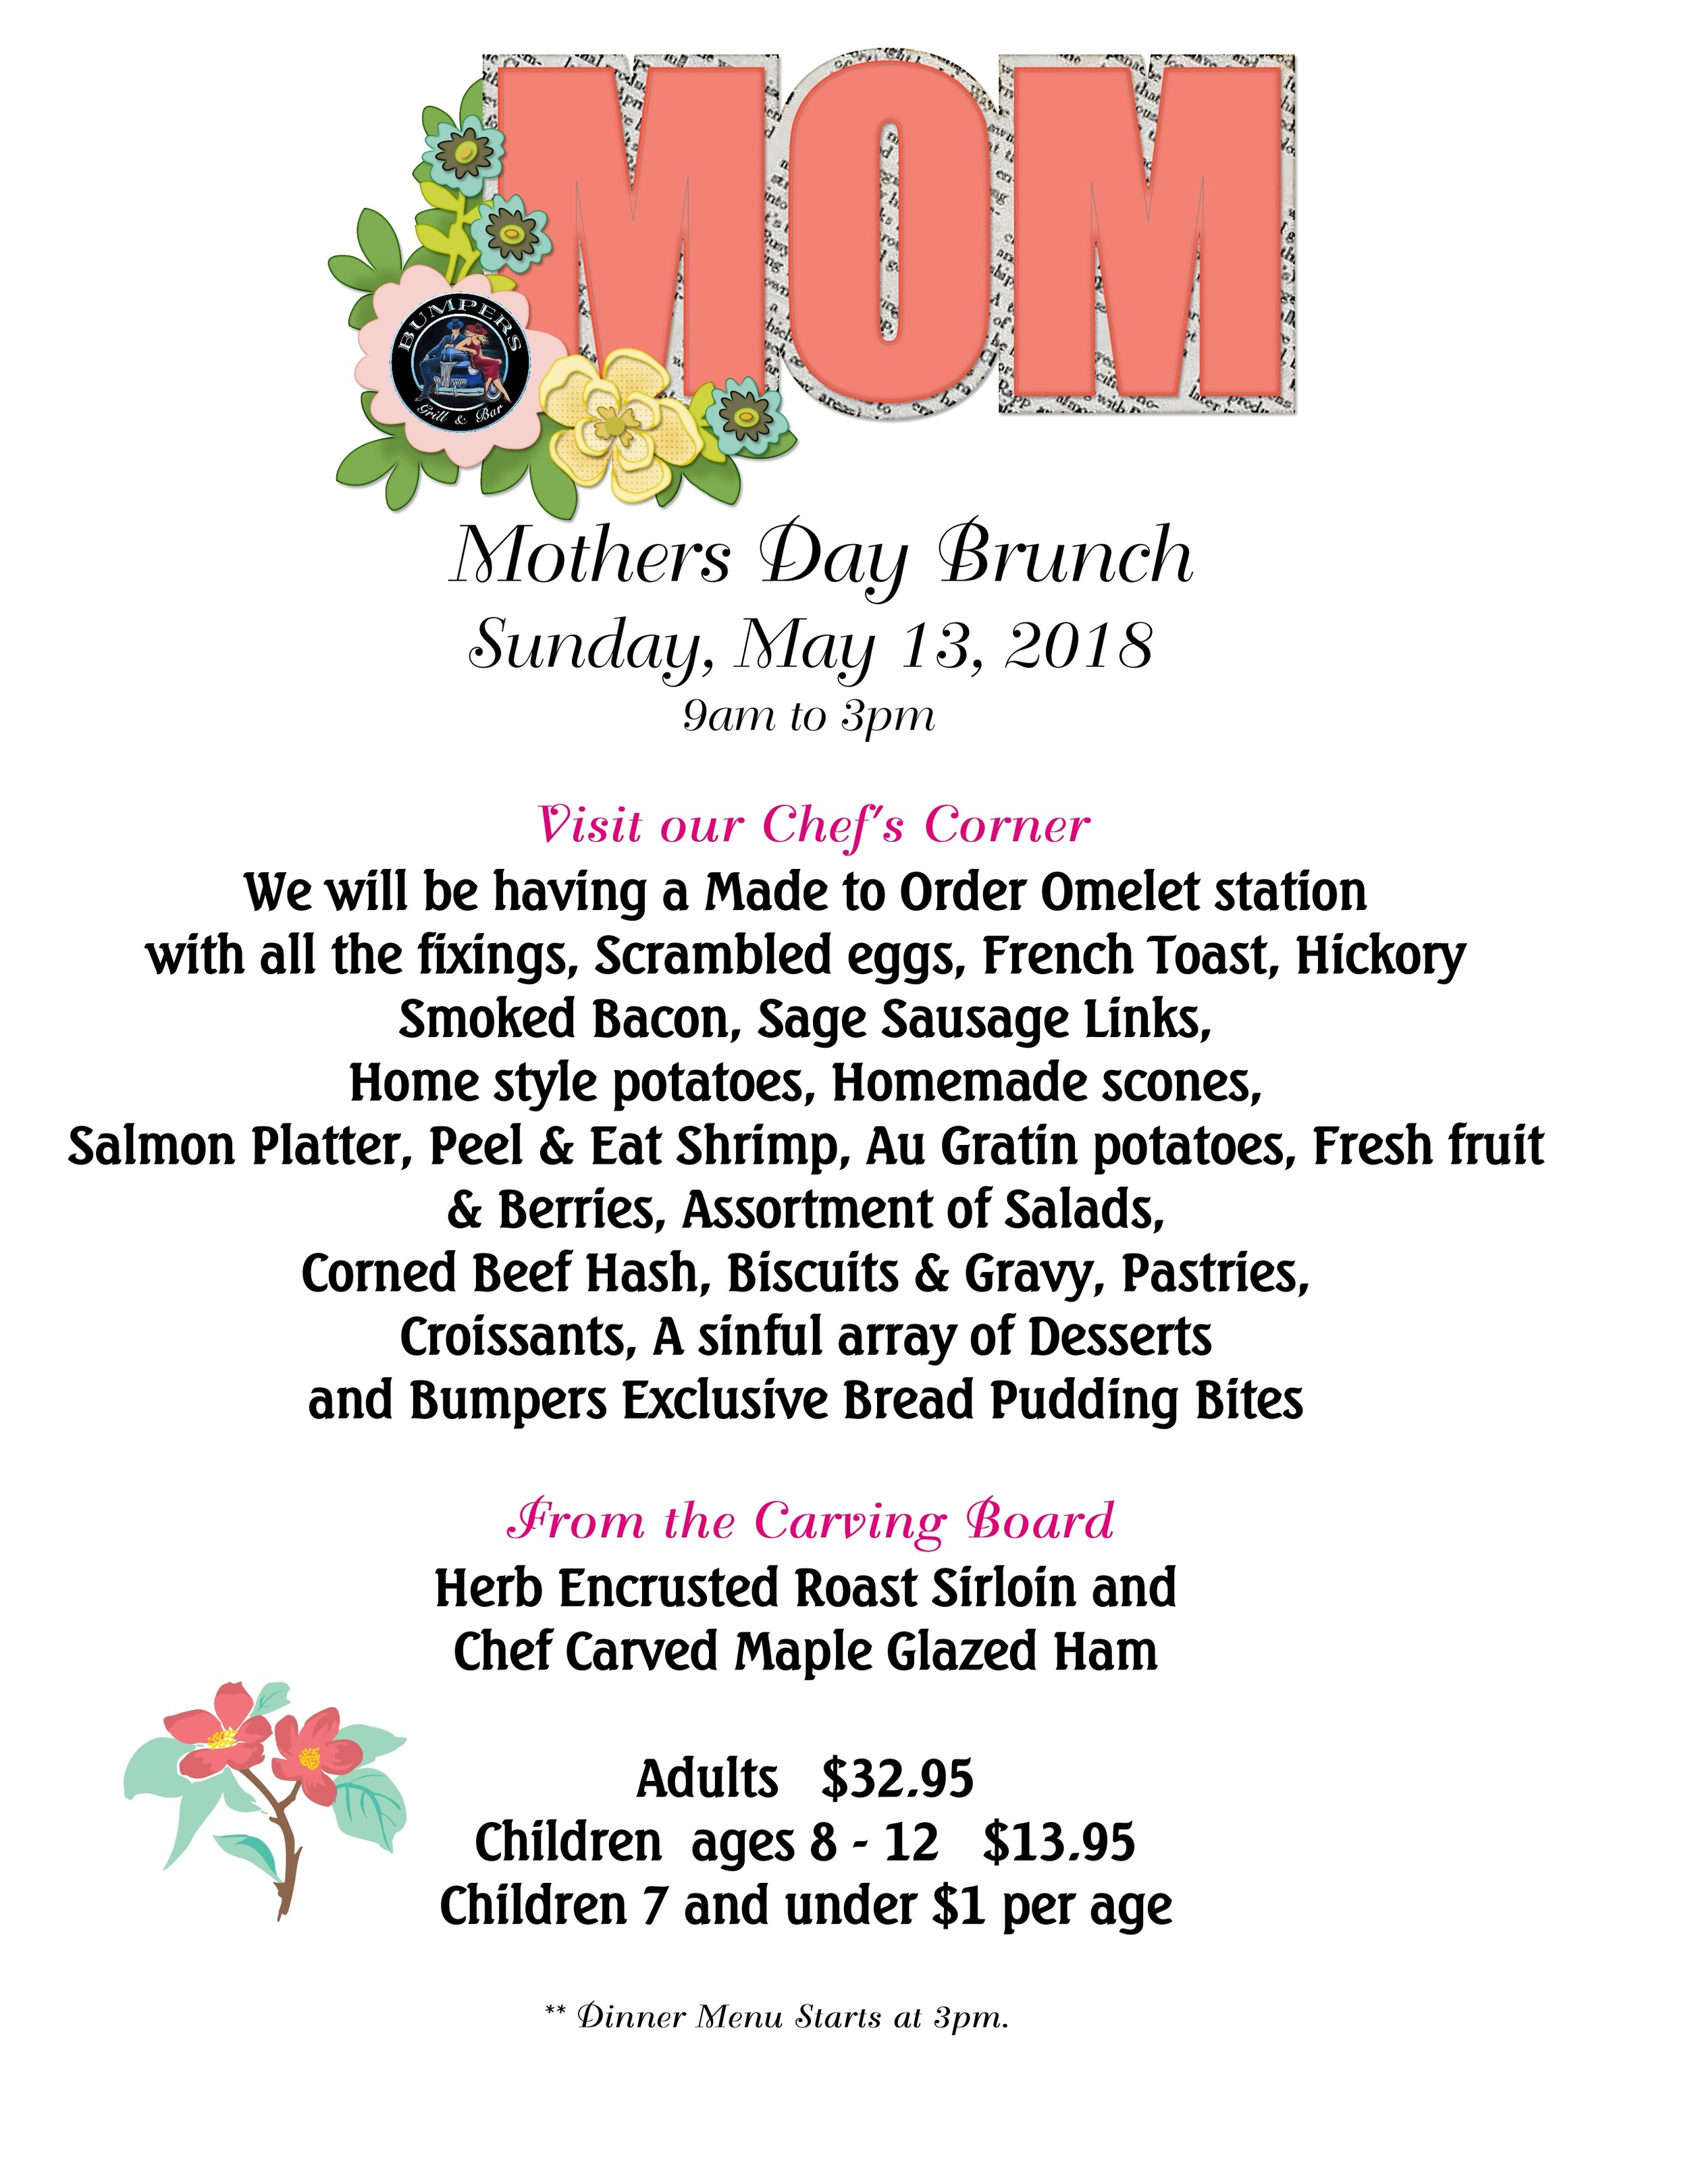 Mothers-Day-Menu-2018-for-web-001.jpg